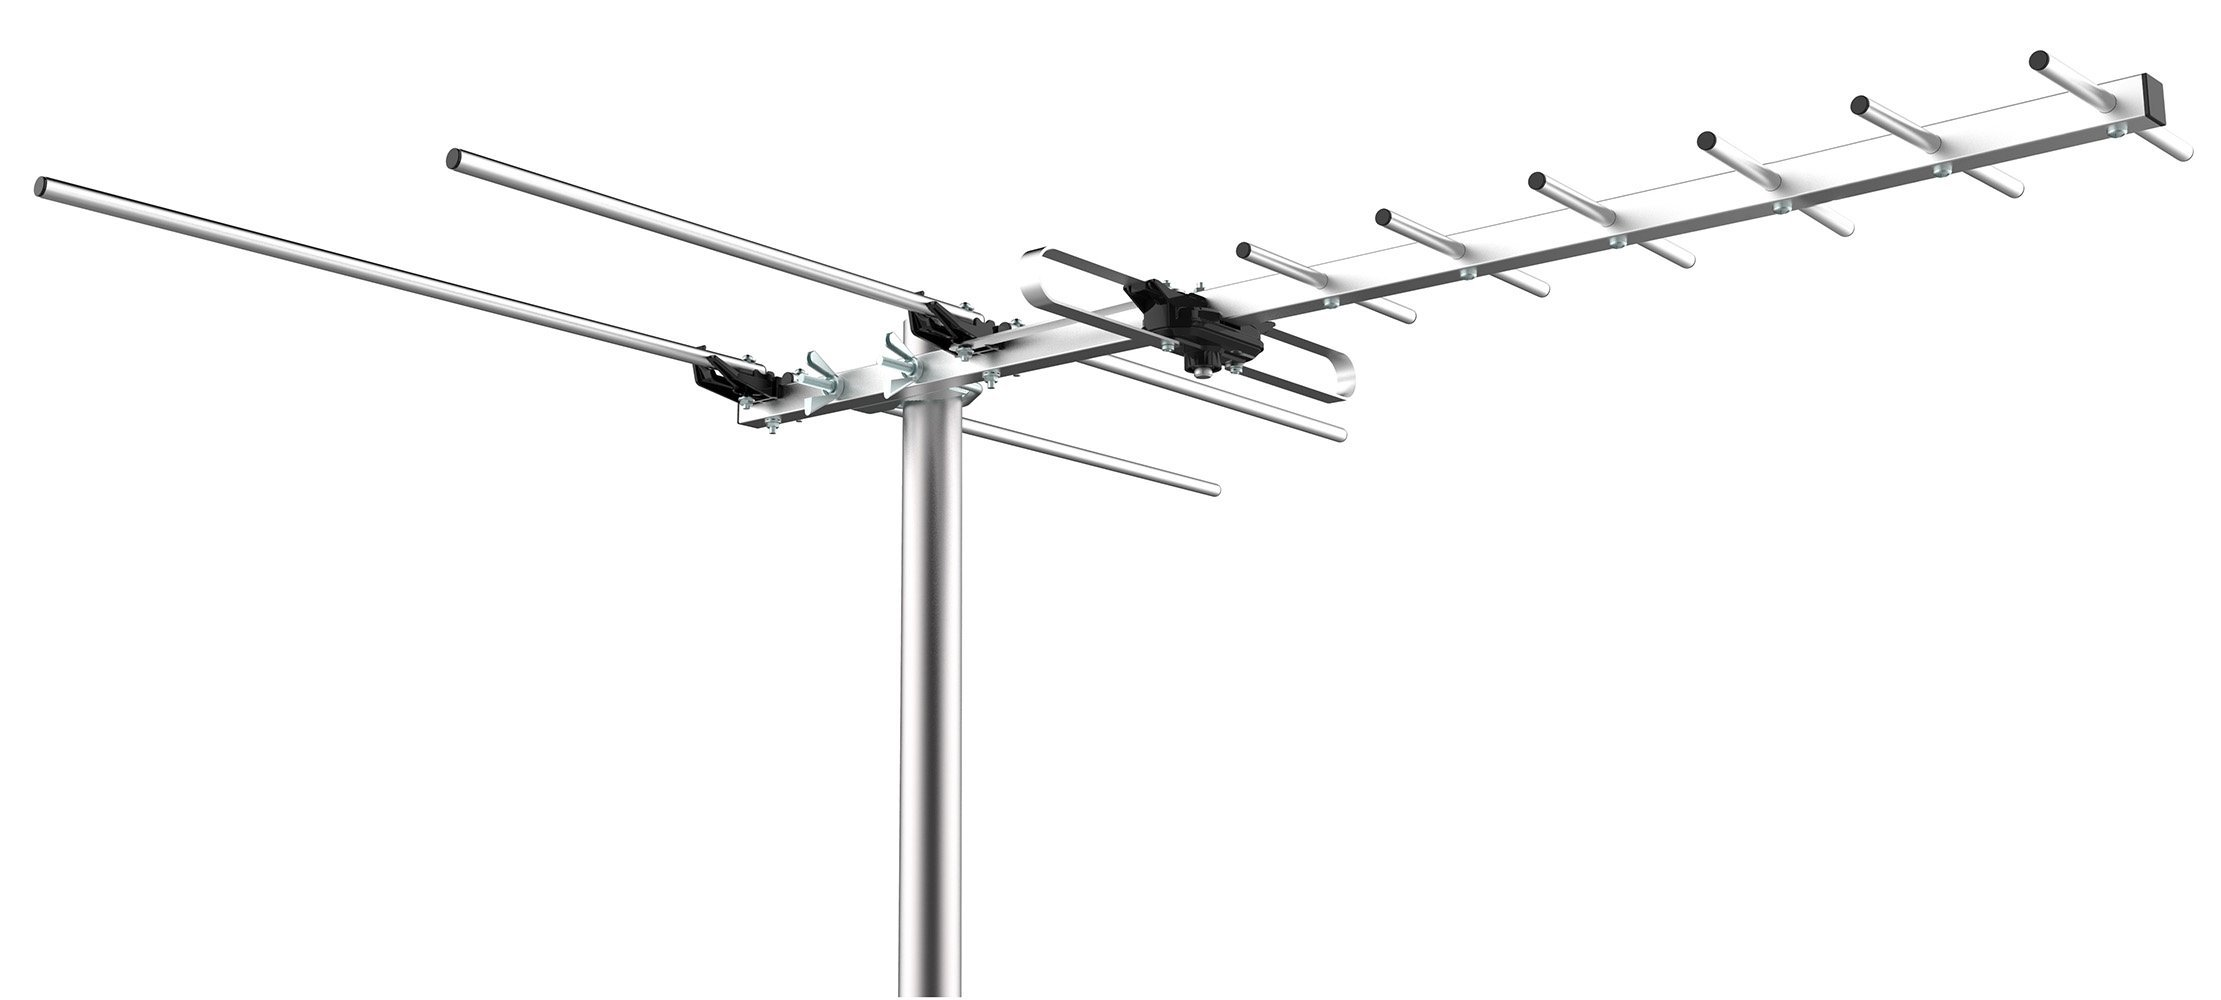 Mediasonic HOMEWORX HDTV Outdoor Antenna - 80 Miles Range Support UHF / VHF (HW-27UV) by Mediasonic